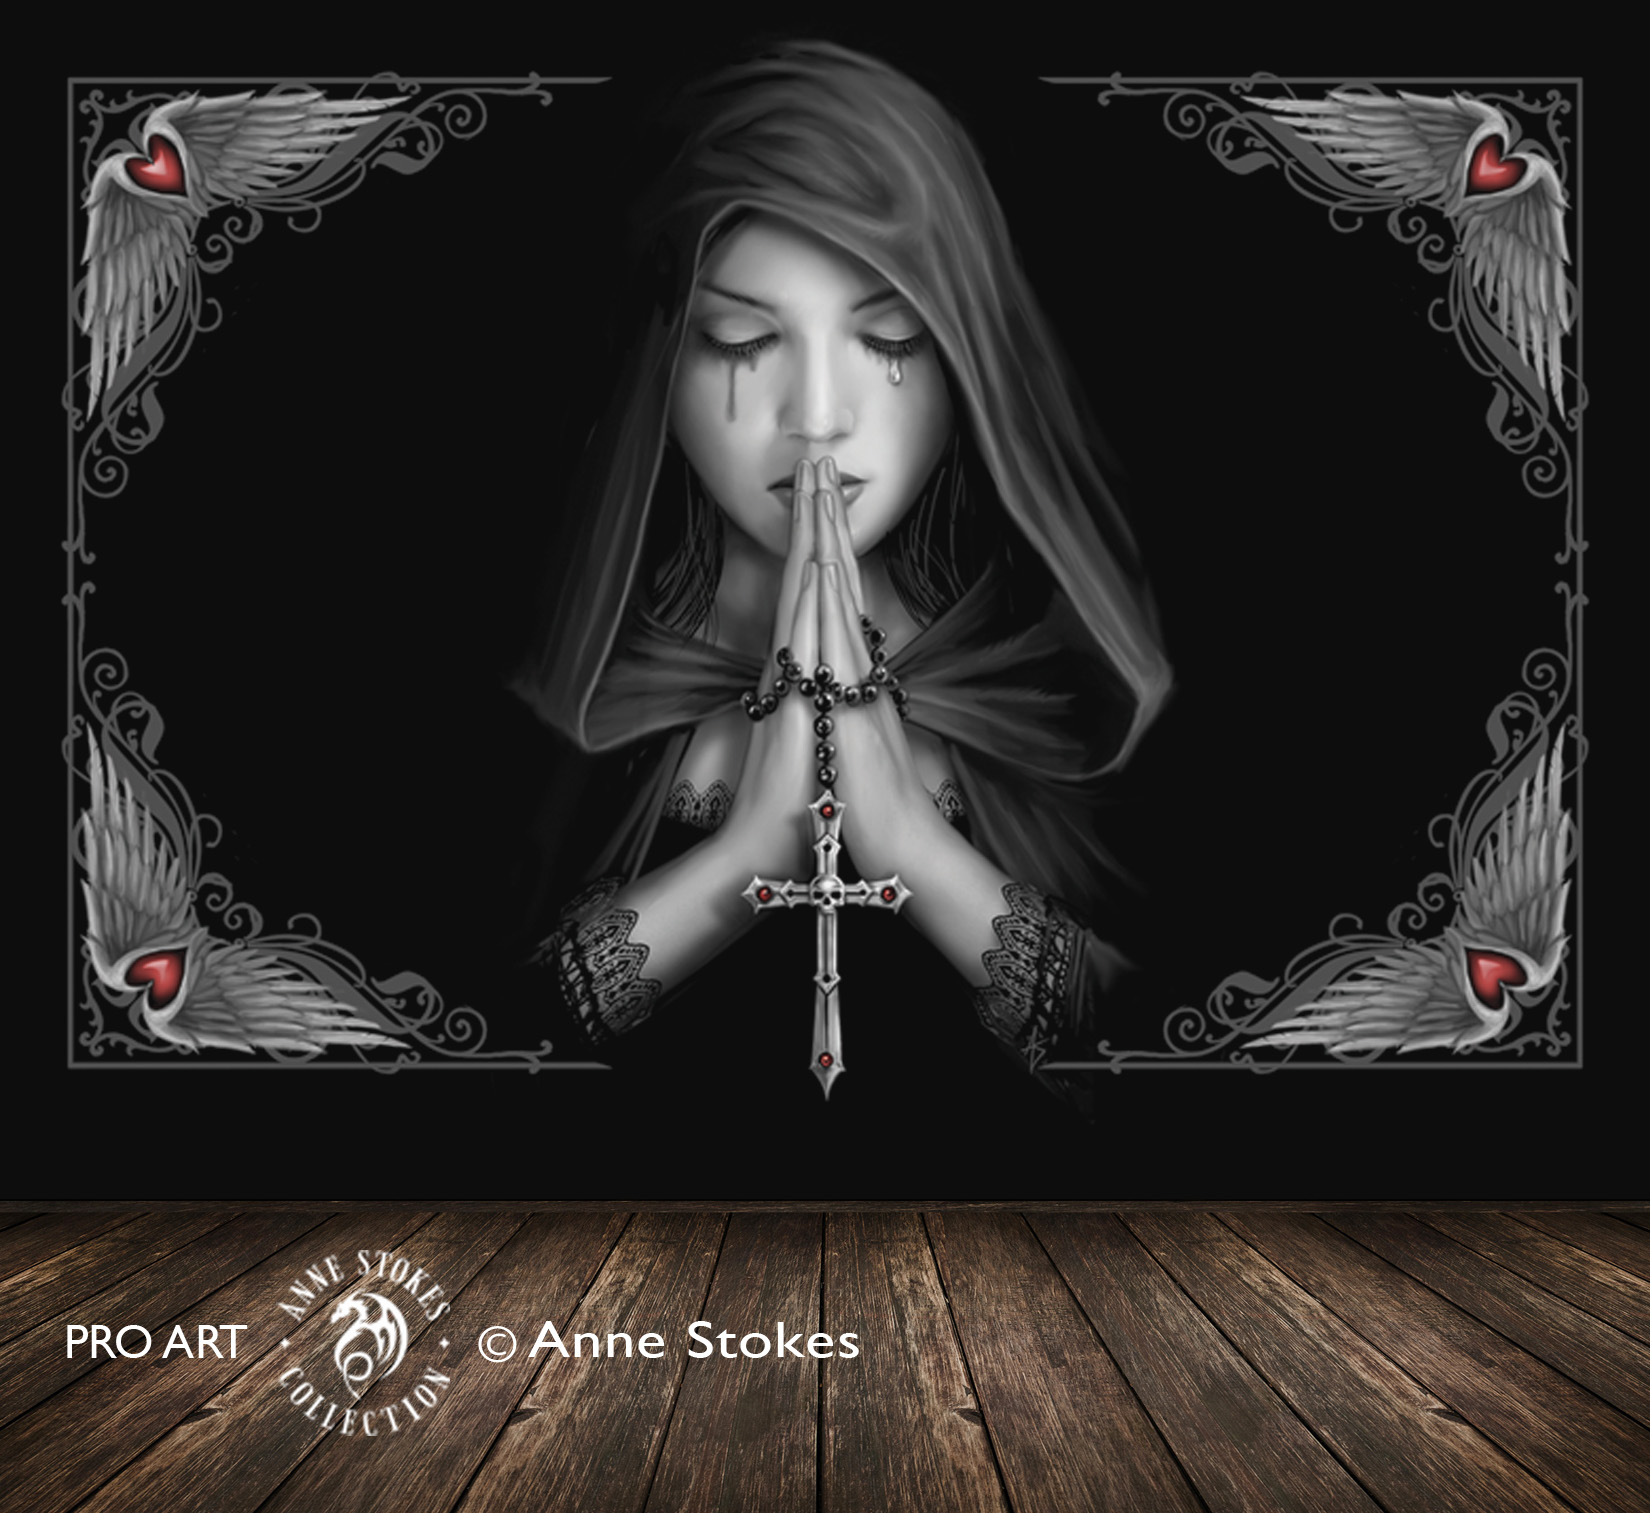 Anne Stokes Full Wall Murals > Anne Stokes - Gothic Prayer 0 GPRASW001